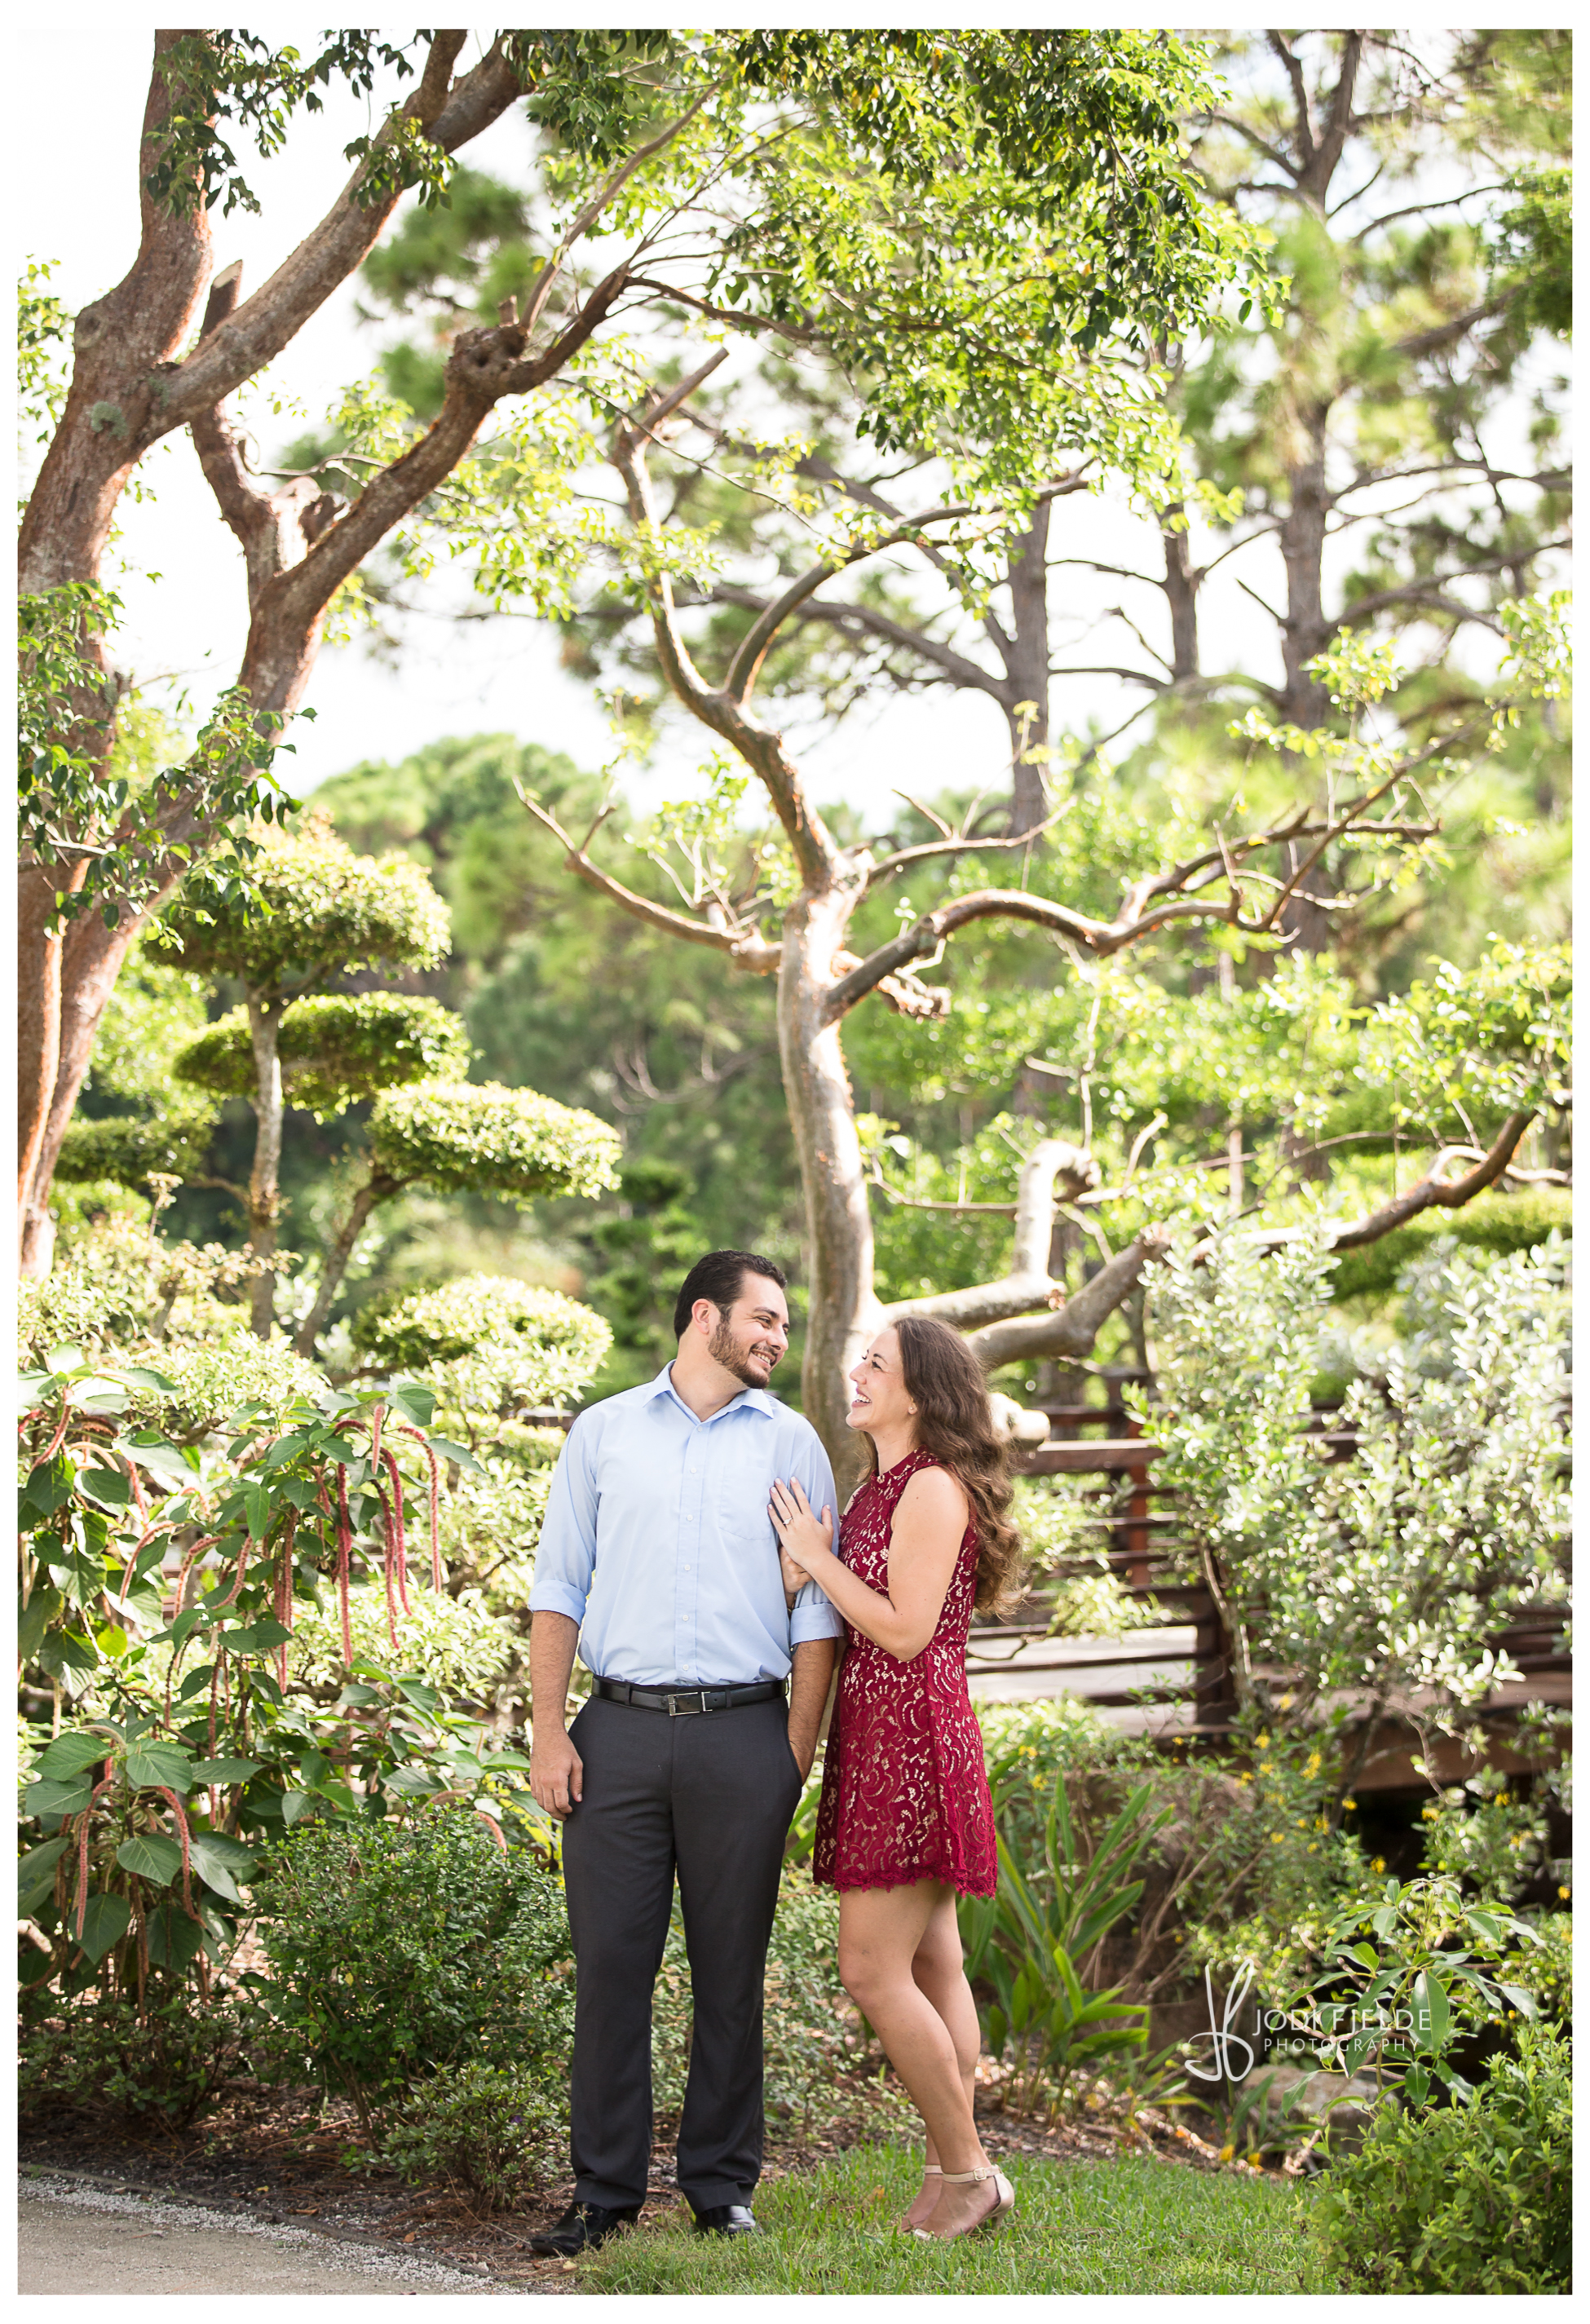 Morikami_Museum_Gardens_Delray_Beach_Engagement_Heather_and Doug_5.jpg